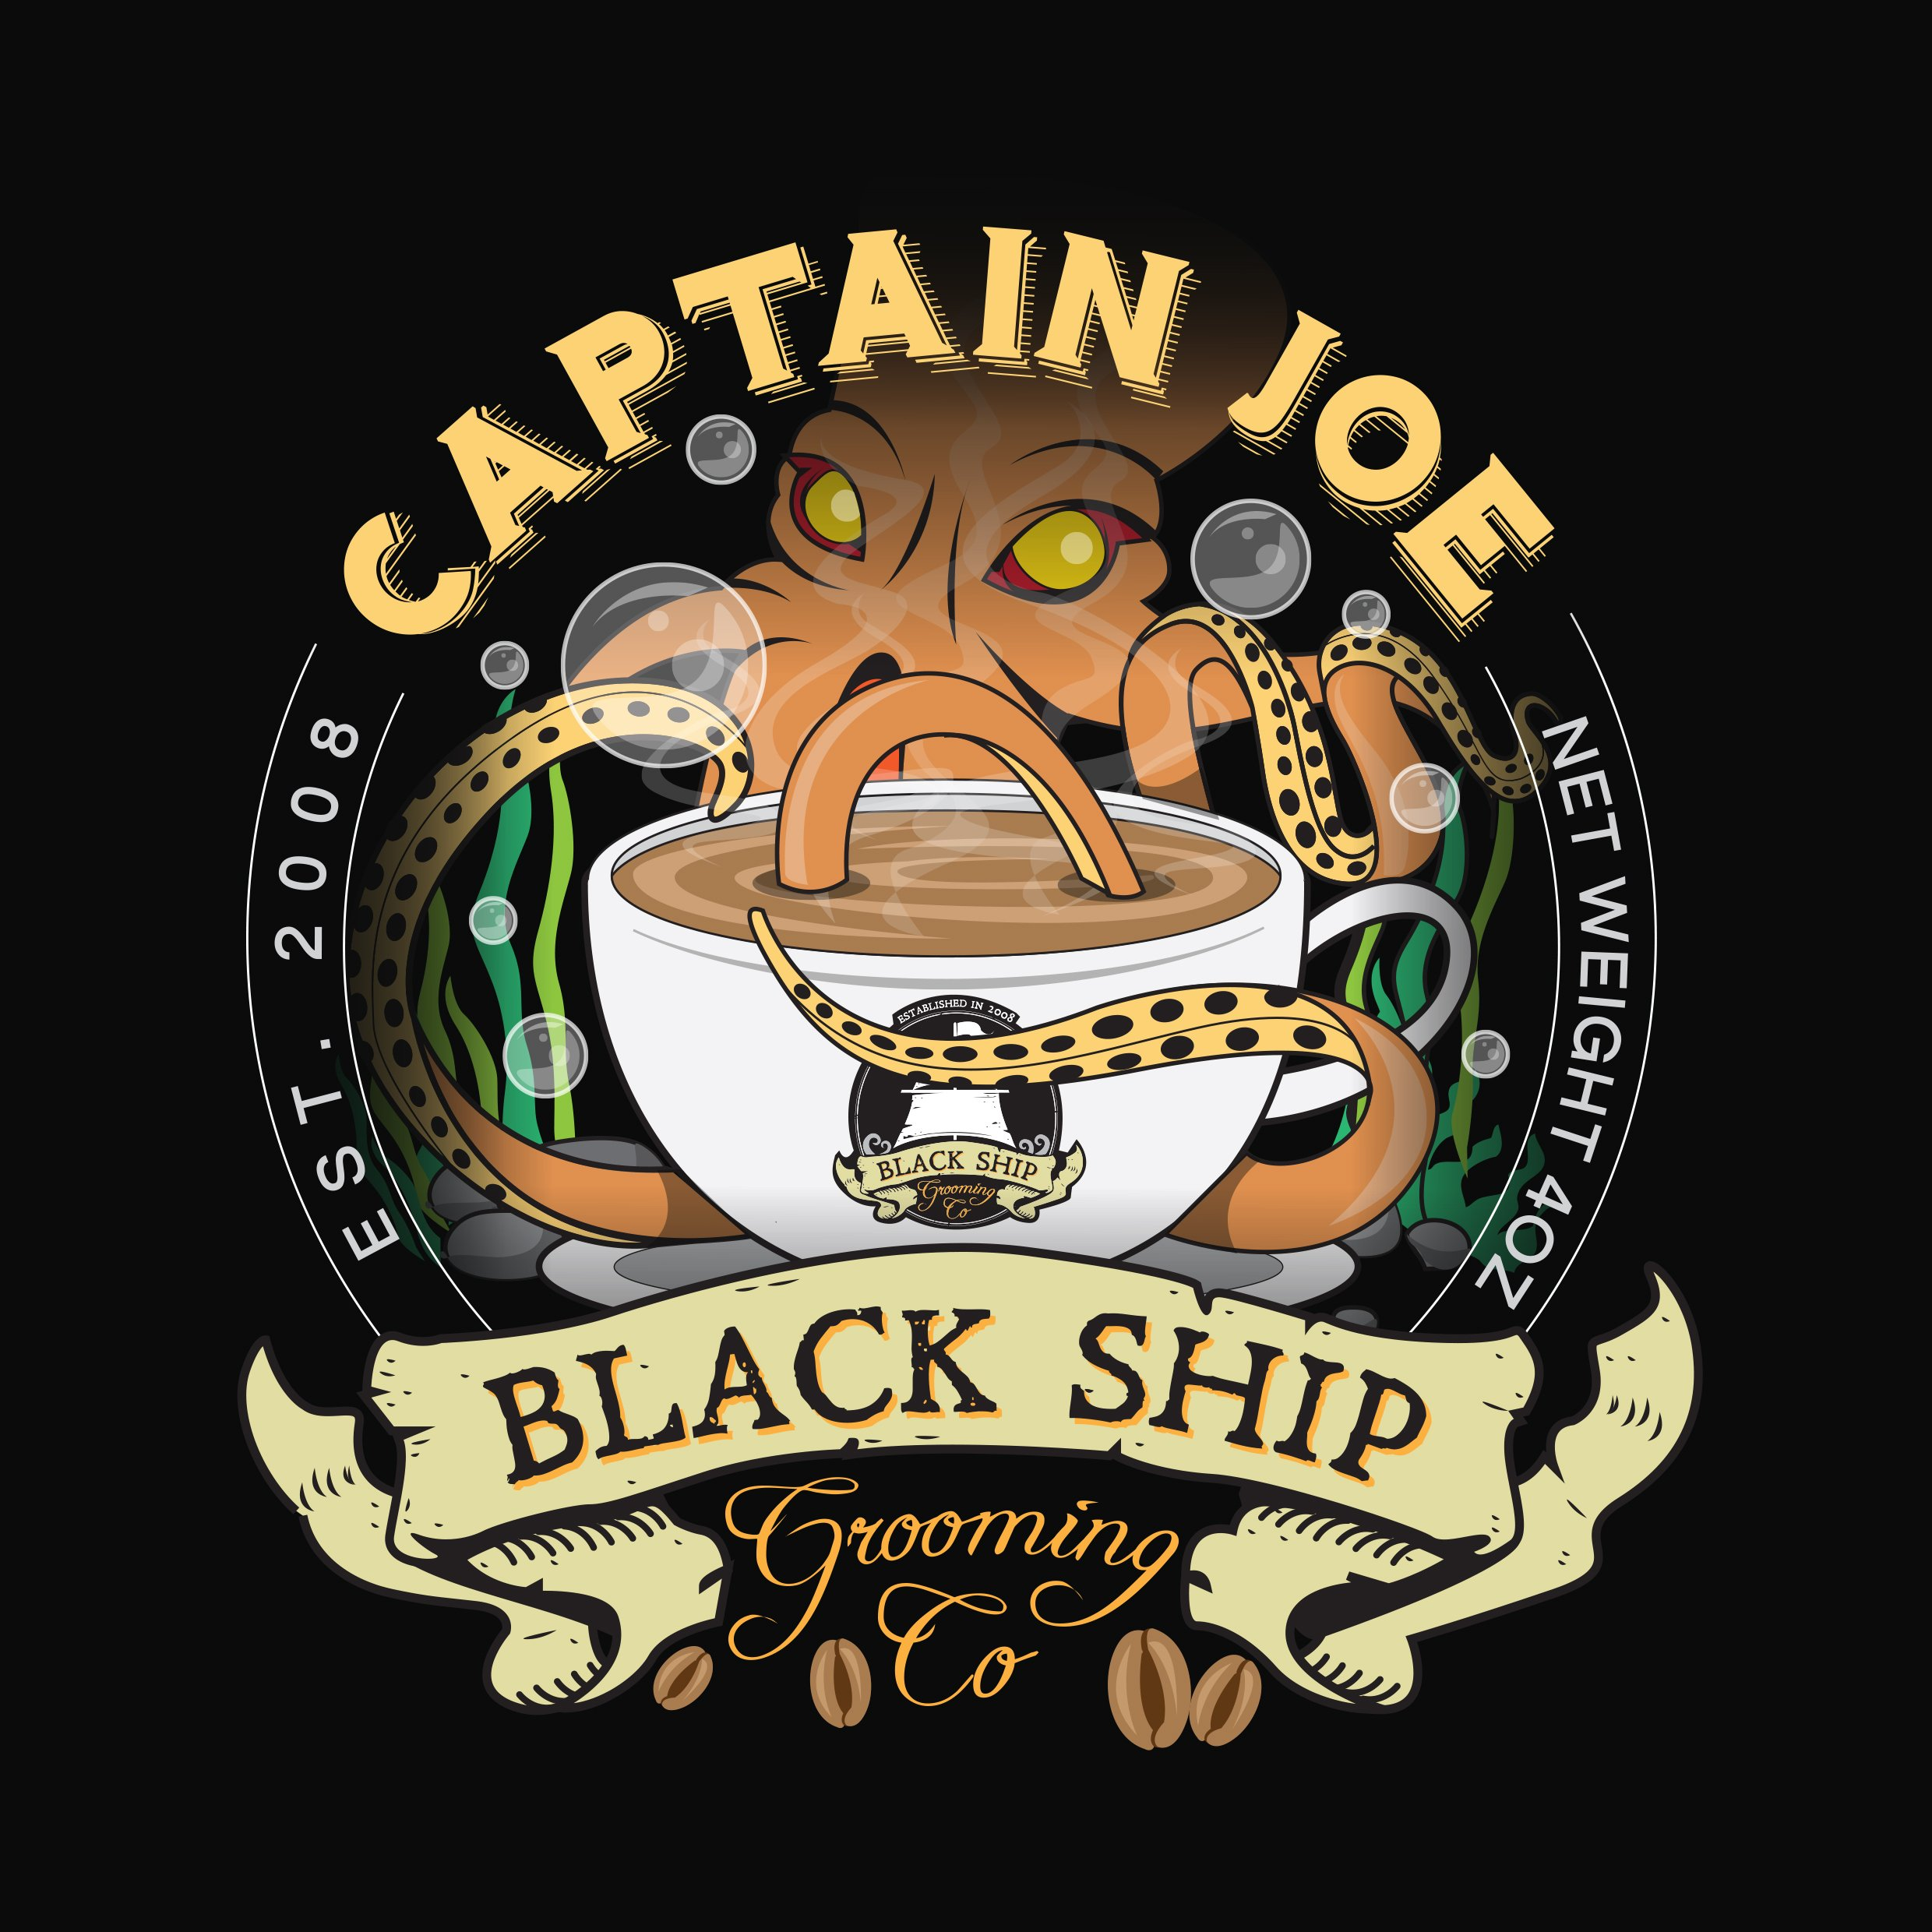 Black Ship Grooming - Captain Joe - Aftershave image